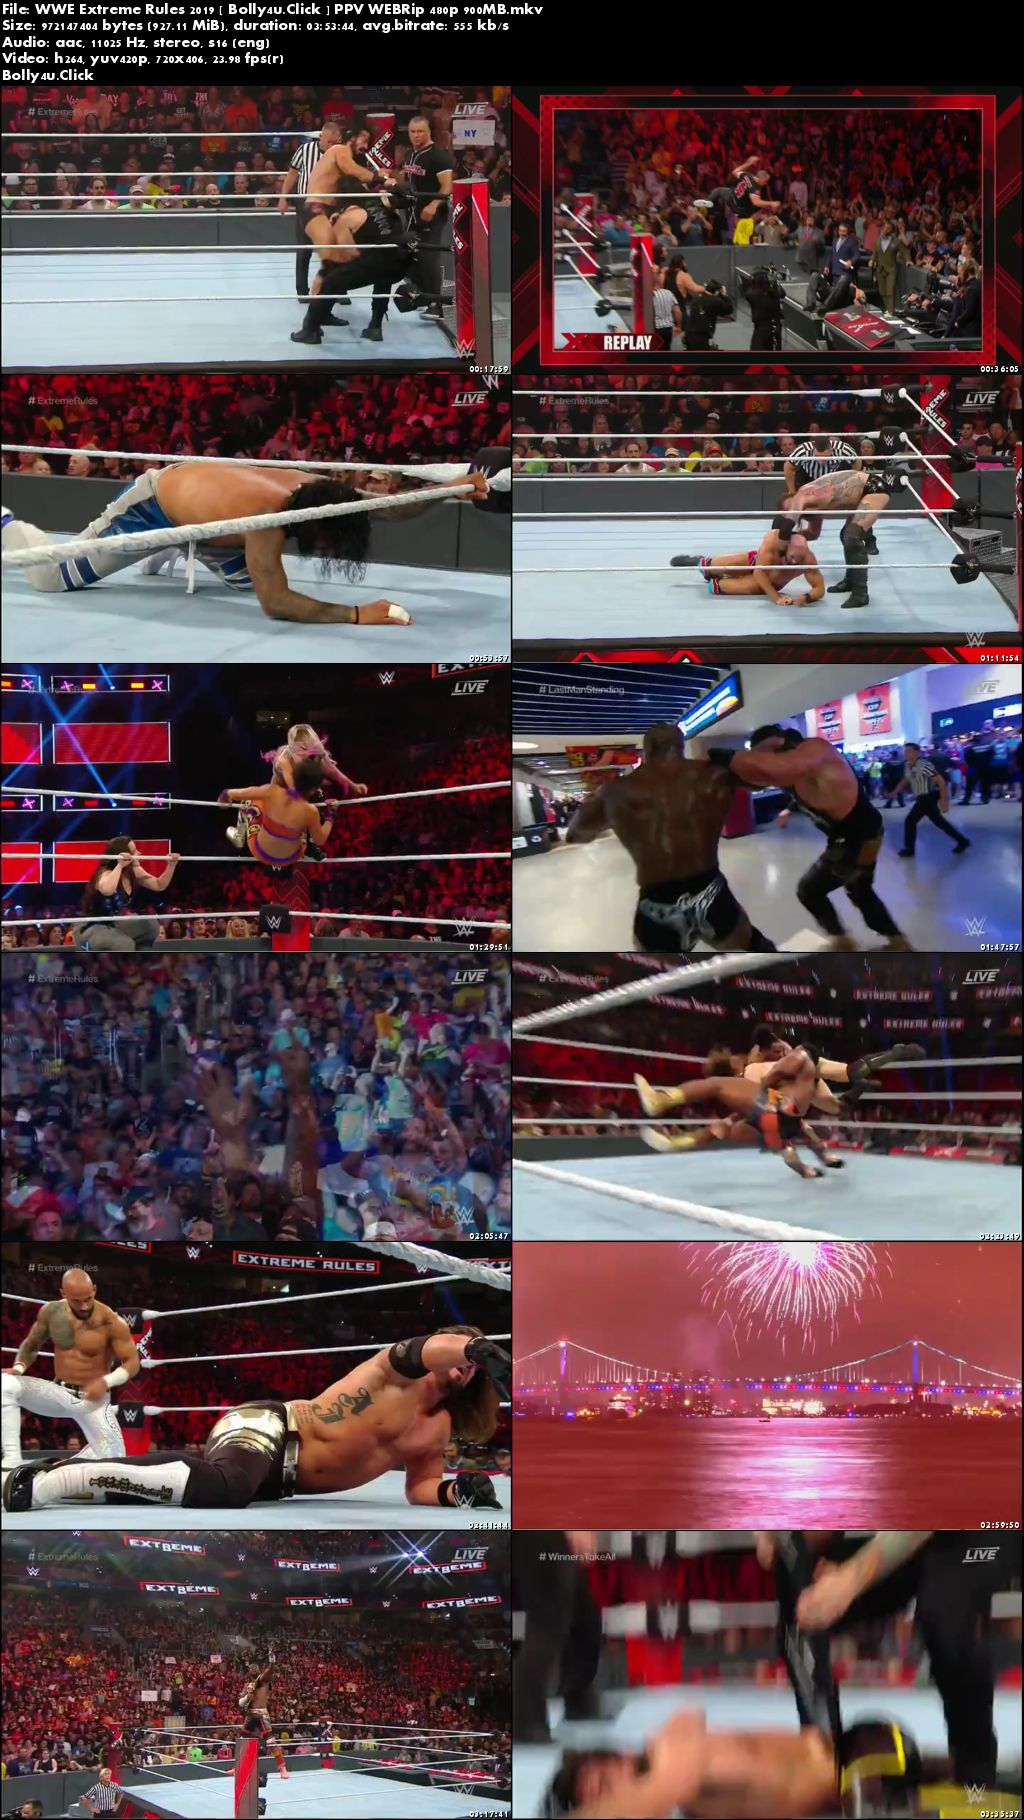 WWE Extreme Rules 2019 PPV 480p 900Mb WEBRip Download